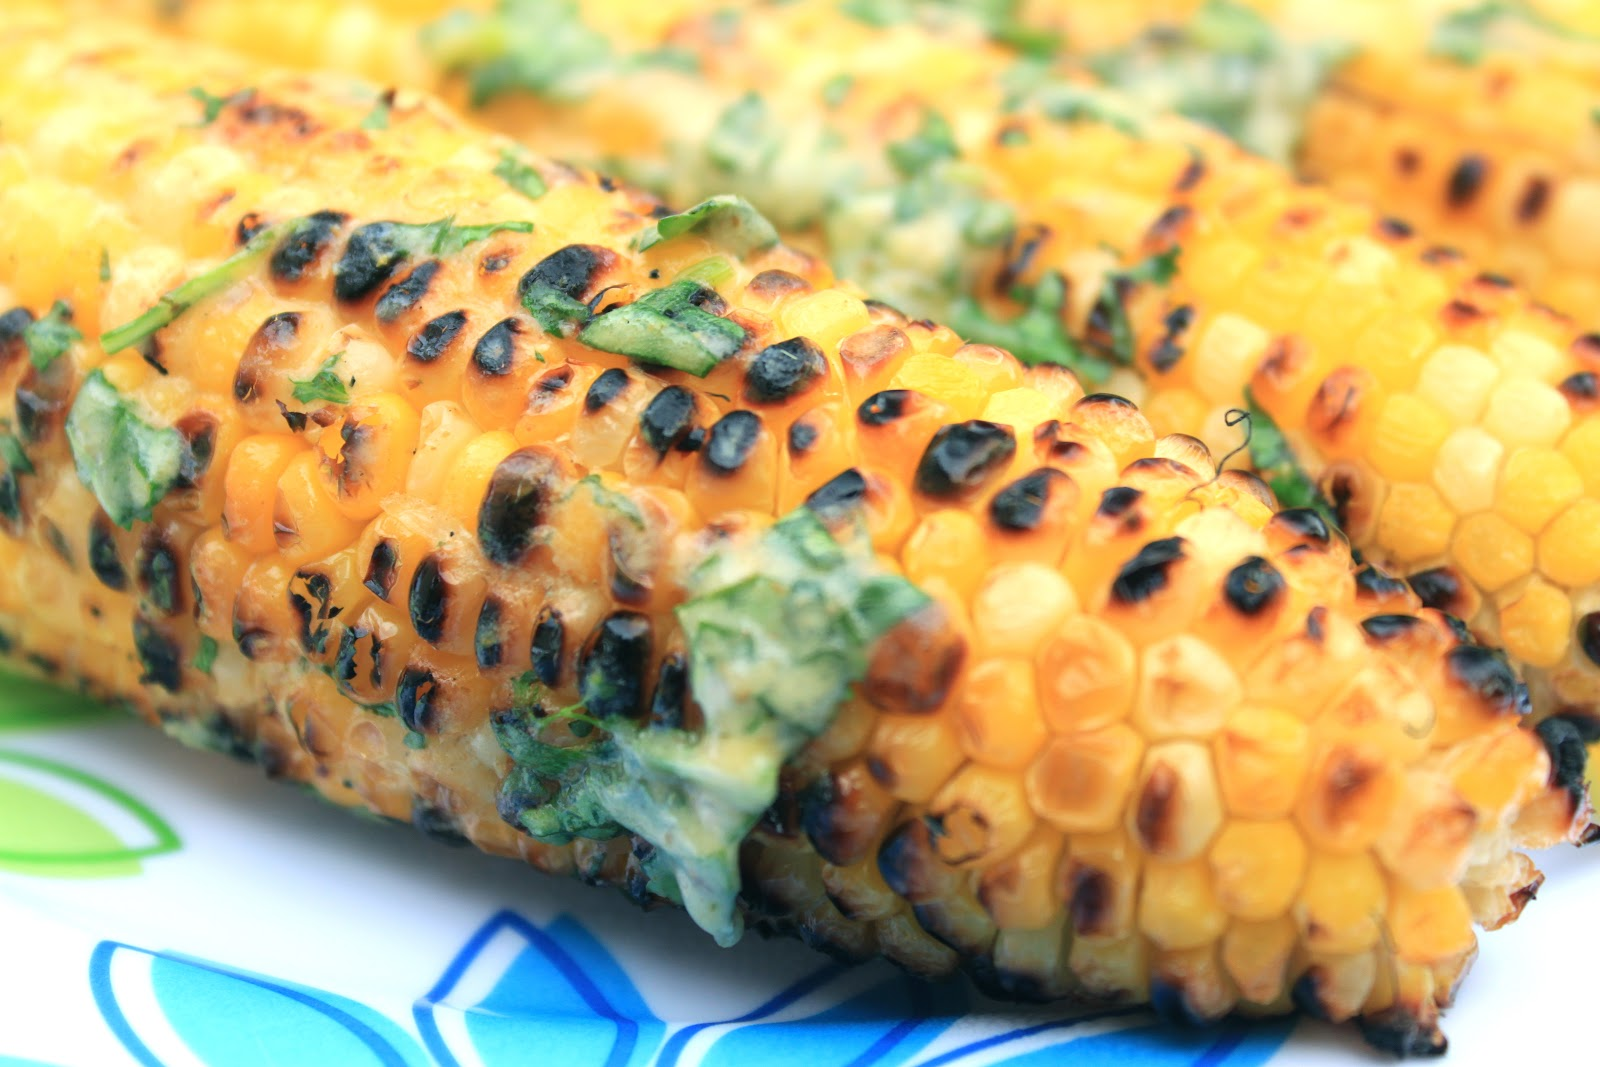 Cilantro-Lime Grilled Corn on the Cob